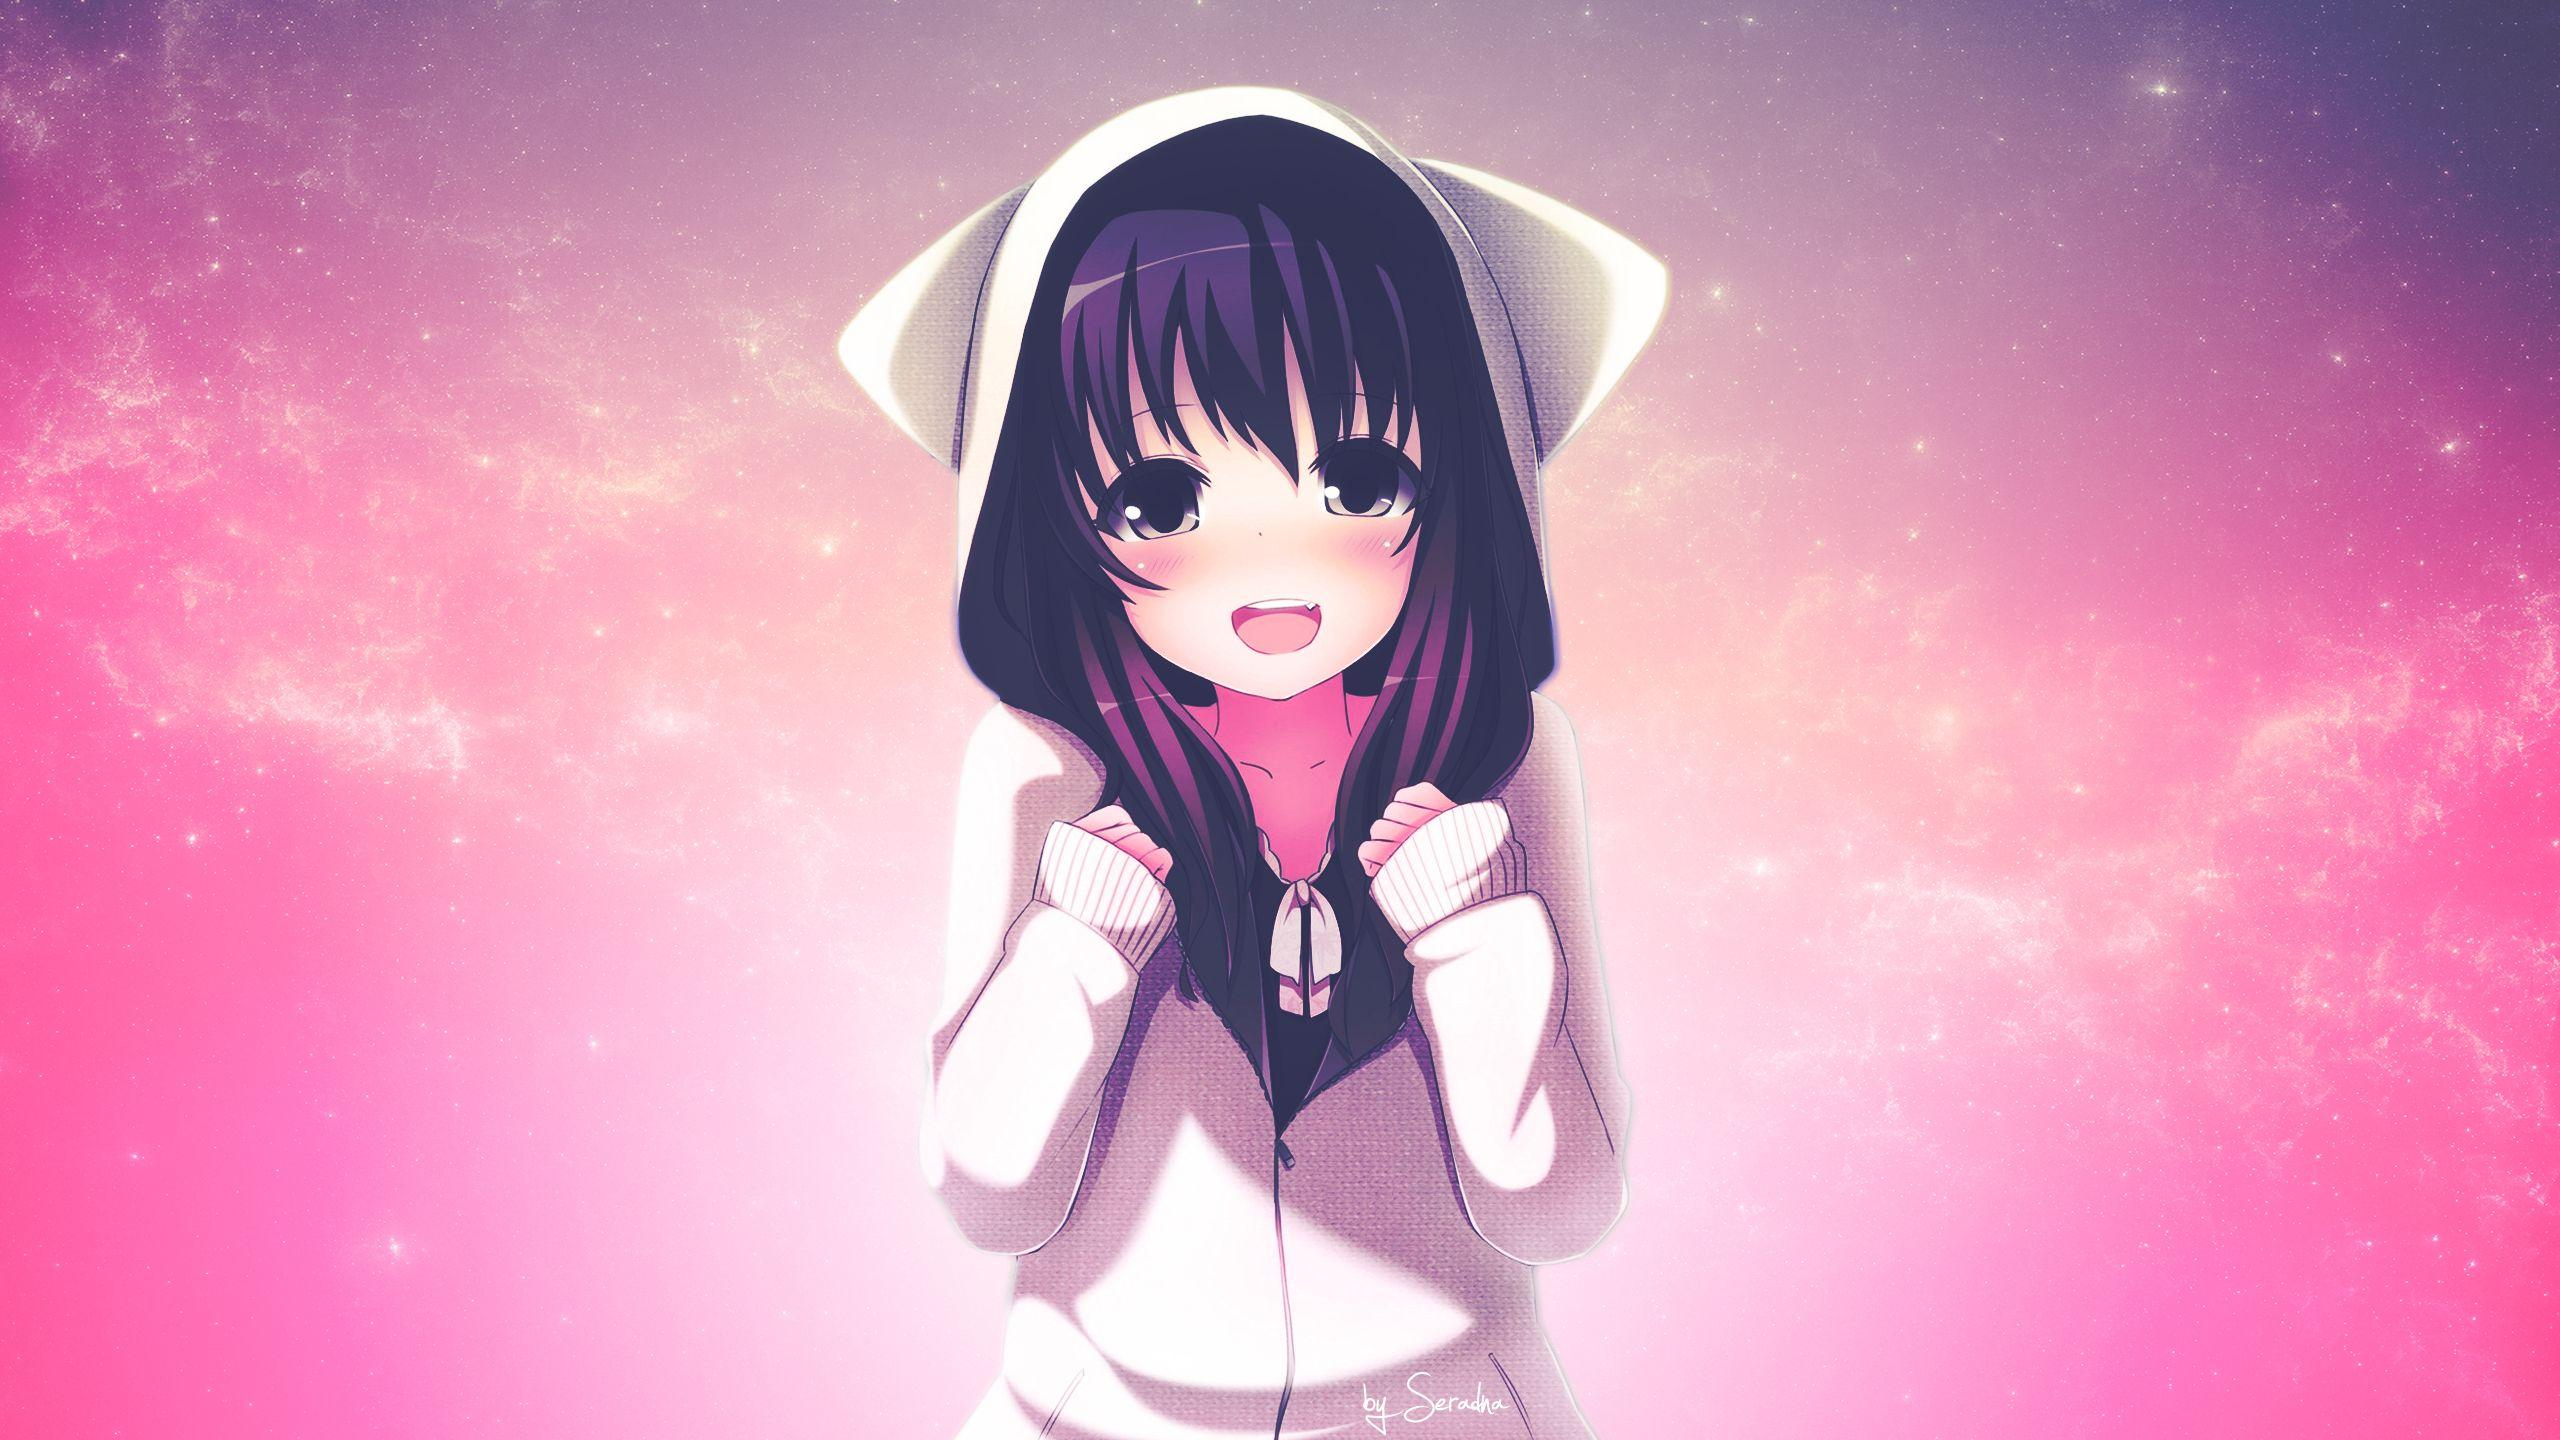 Wallpaper of cute anime girls cute anime girl wallpaper qygjxz